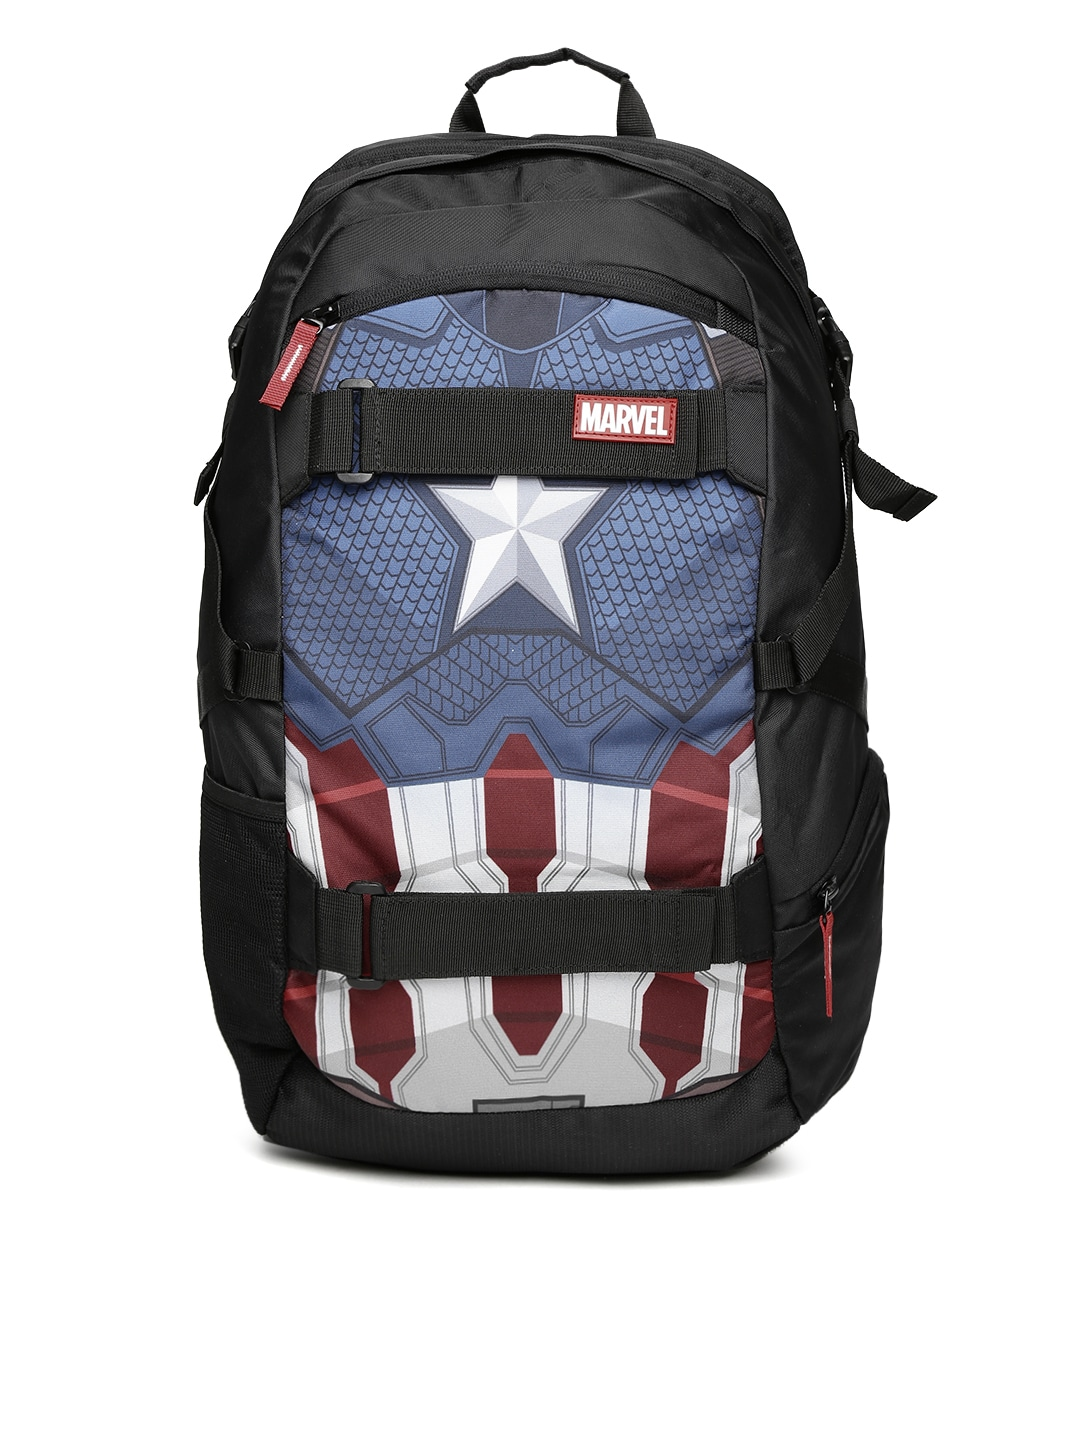 Buy Kook N Keech Marvel Unisex Black & Navy Captain America Star Printed Backpack Online at Best Price in India